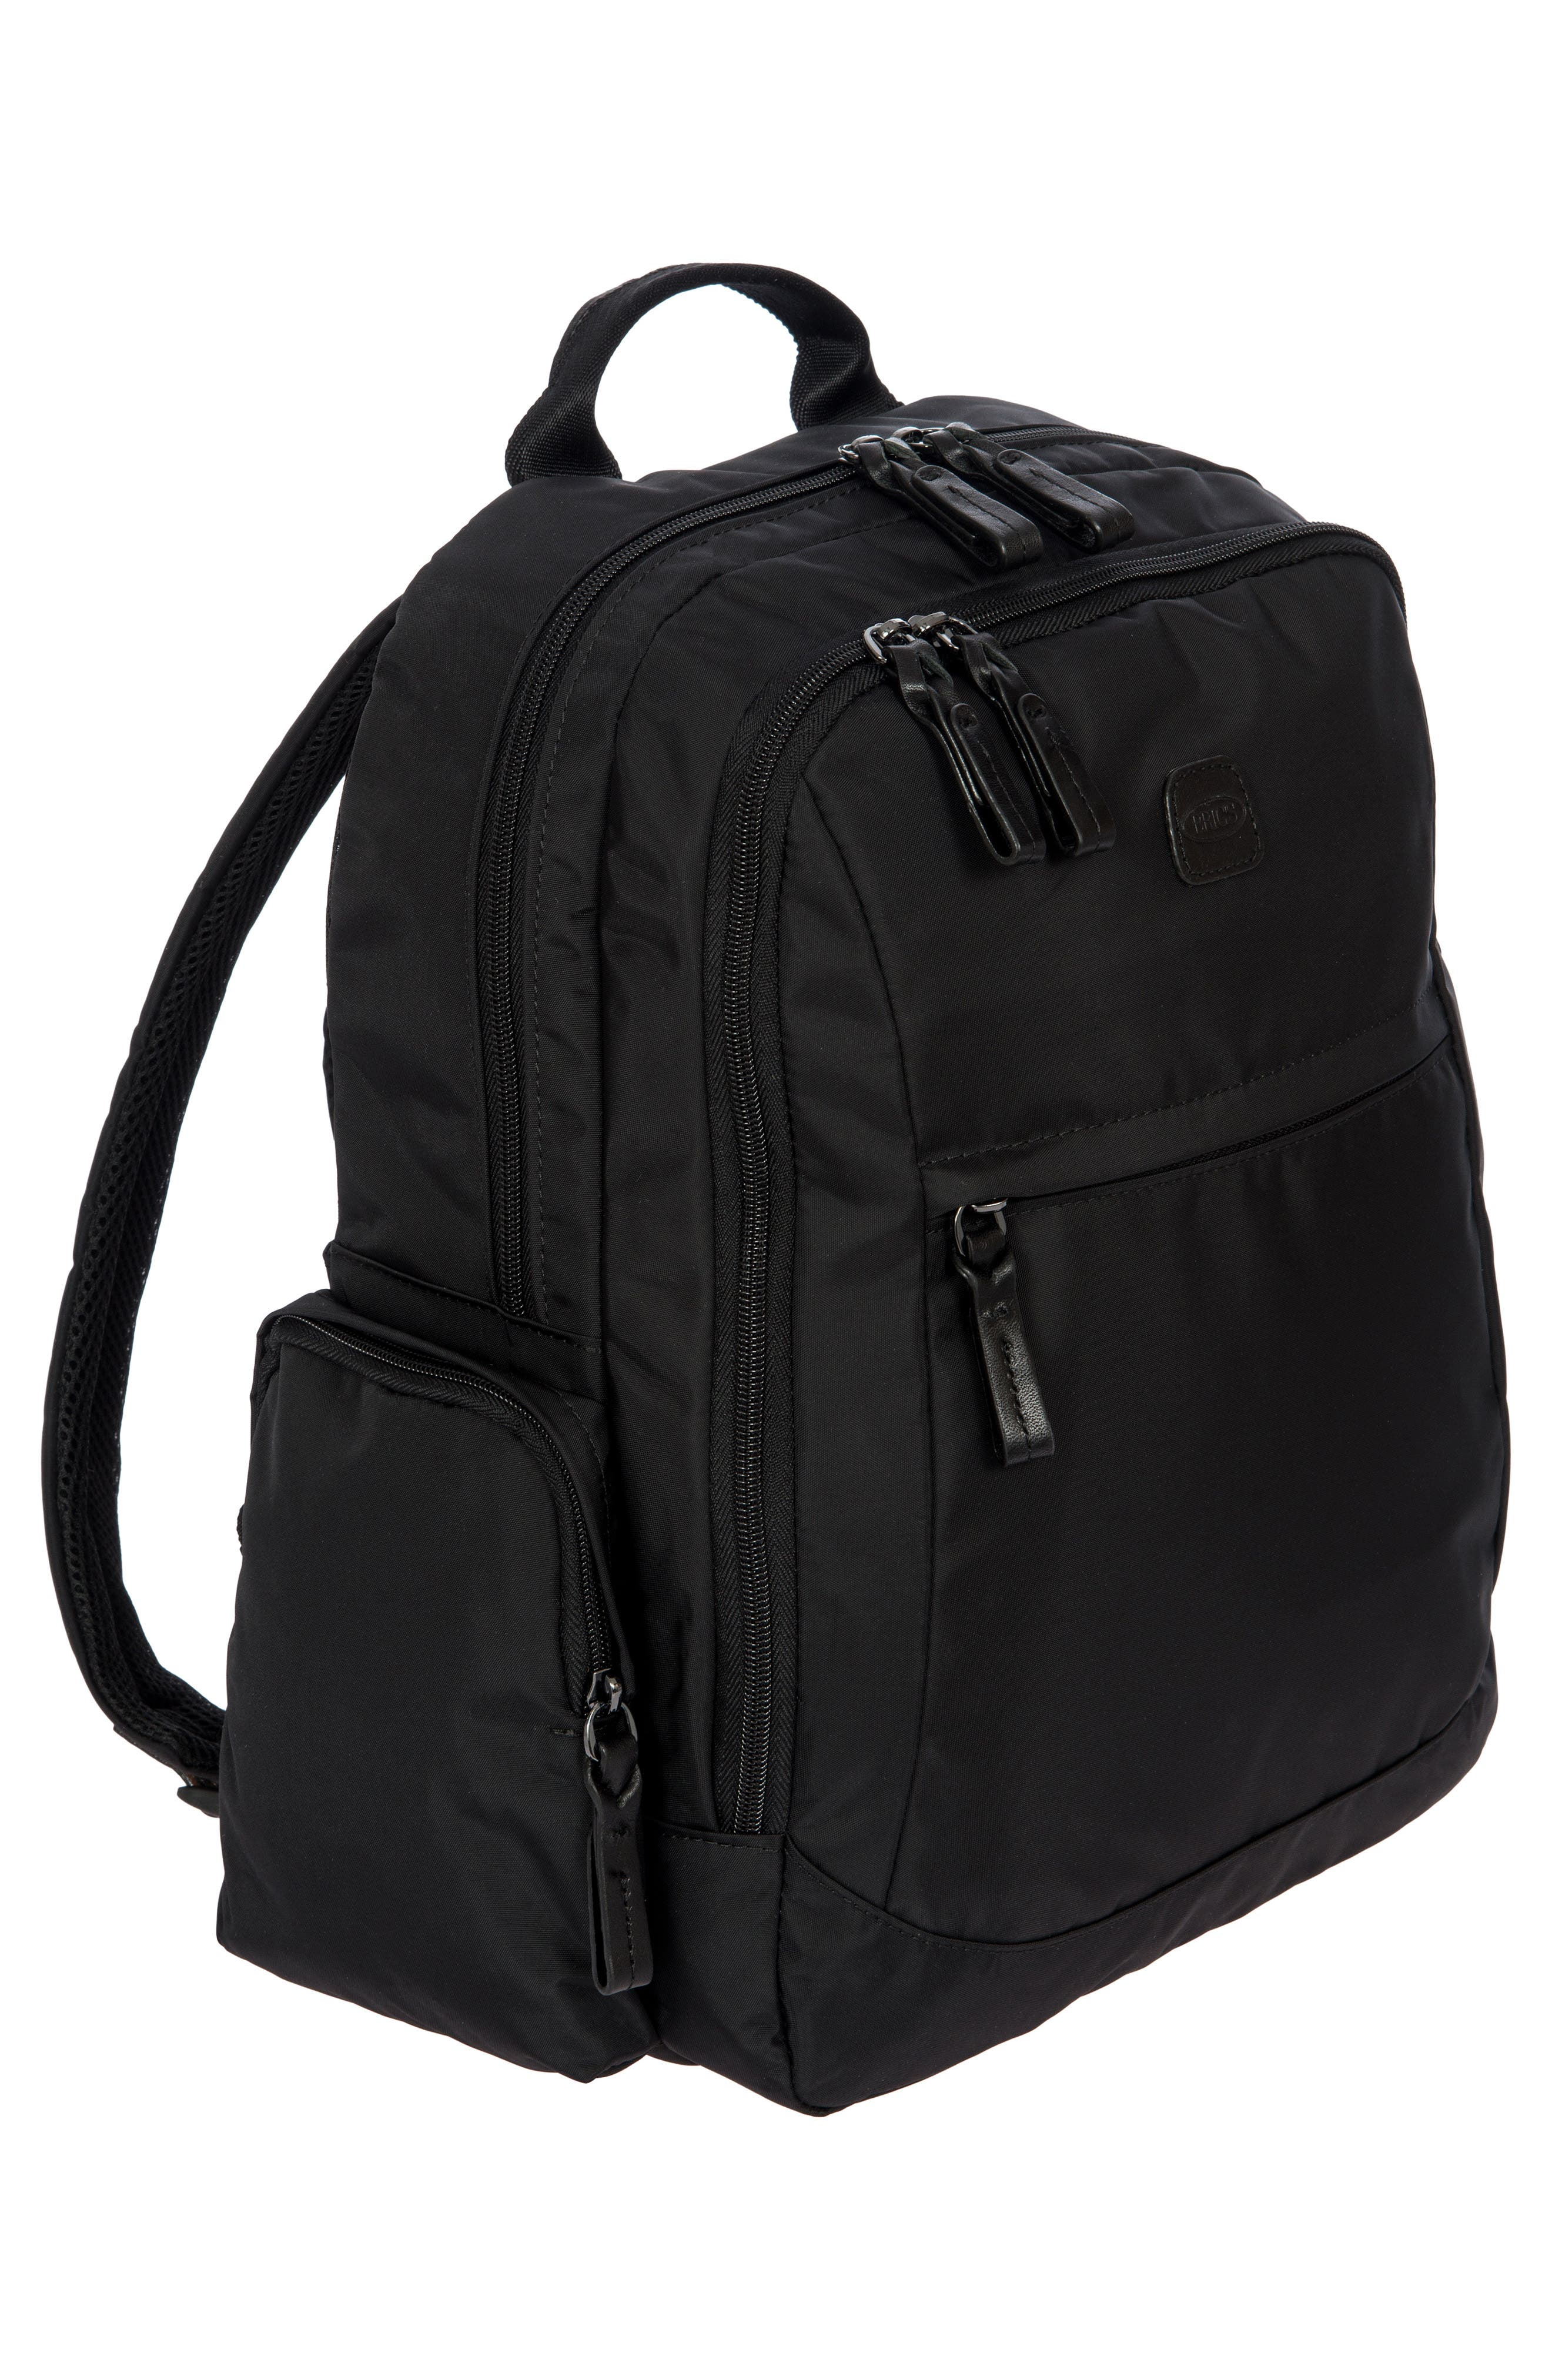 X-Travel Nomad Backpack,                             Alternate thumbnail 6, color,                             001